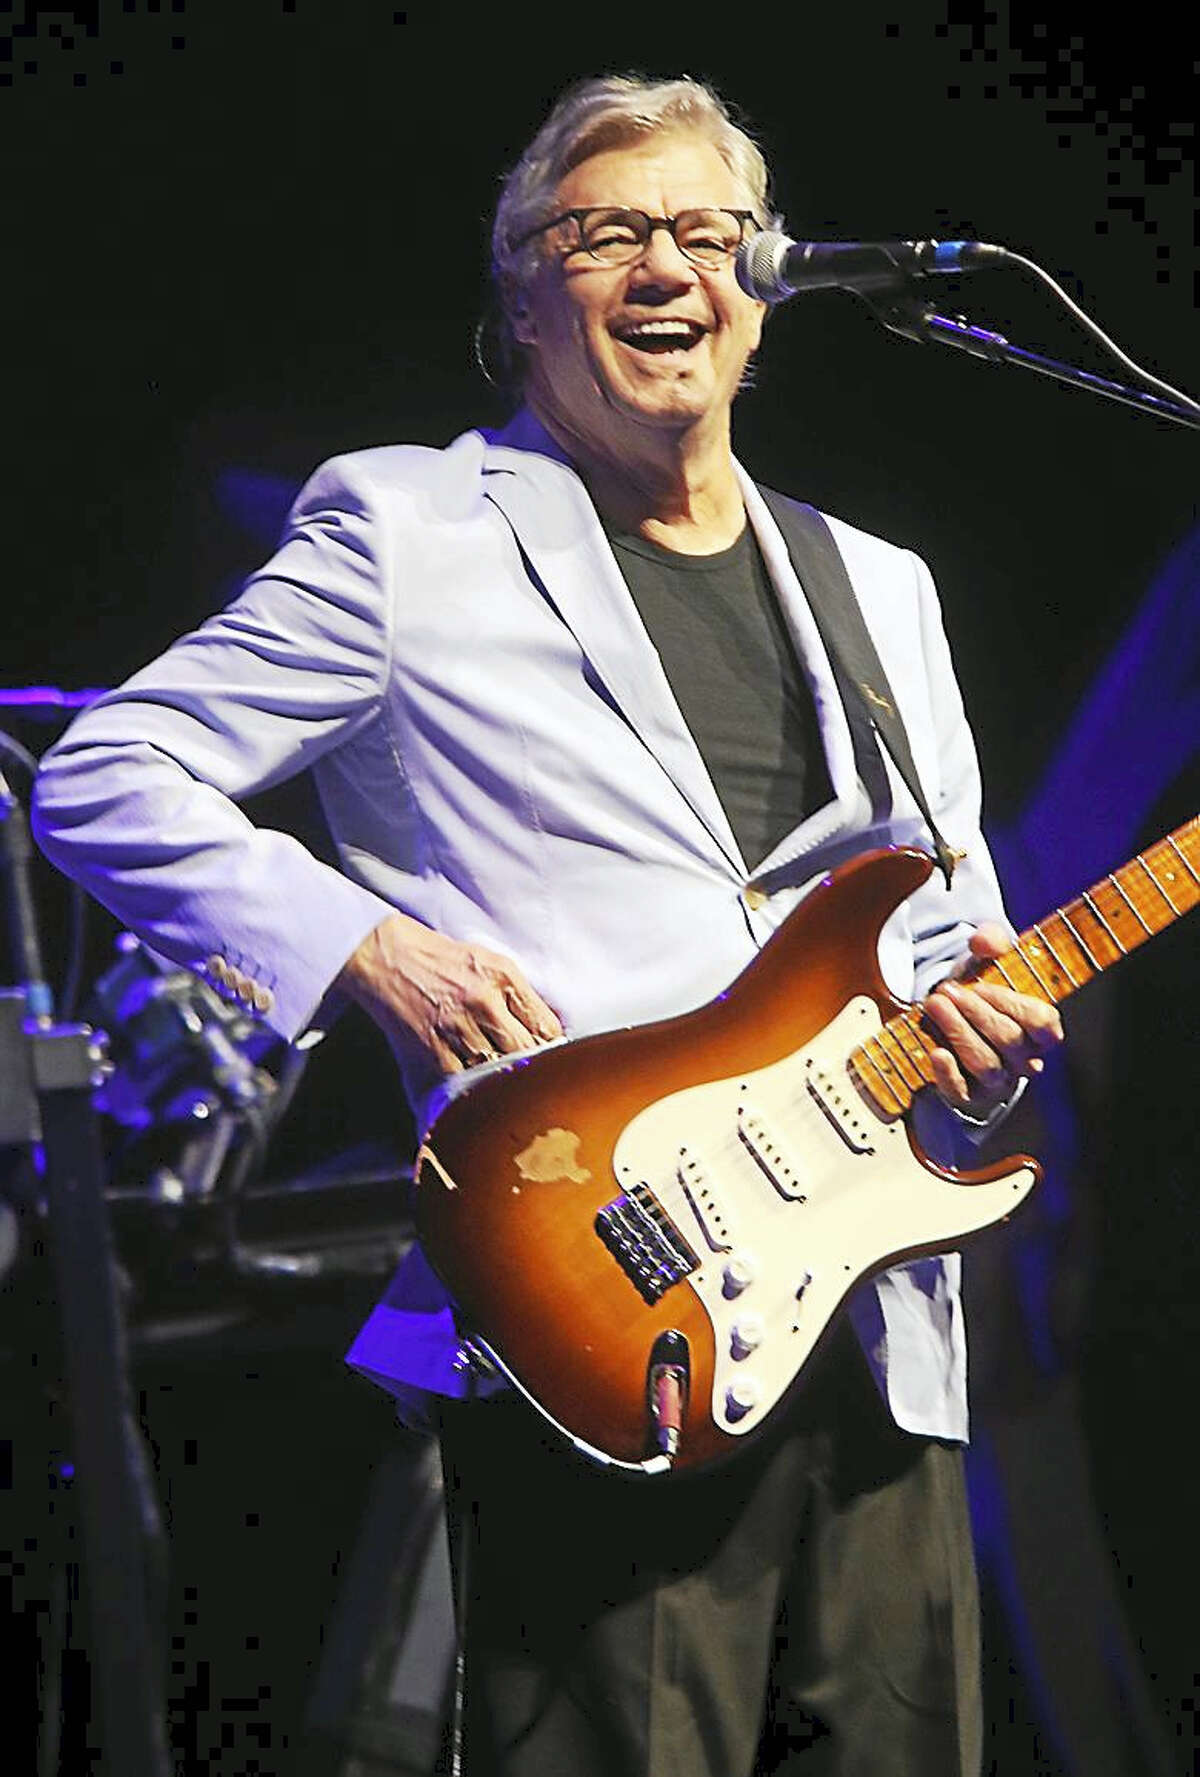 Photo by John AtashianLegendary singer, songwriter and guitarist Steve Miller is shown having fun on stage at the Foxwoods Resort Casino on Saturday night June 24. Also included on the double bill was musician Peter Frampton. To list of great entertainment coming to Foxwoods you can visit www.foxwoods.com